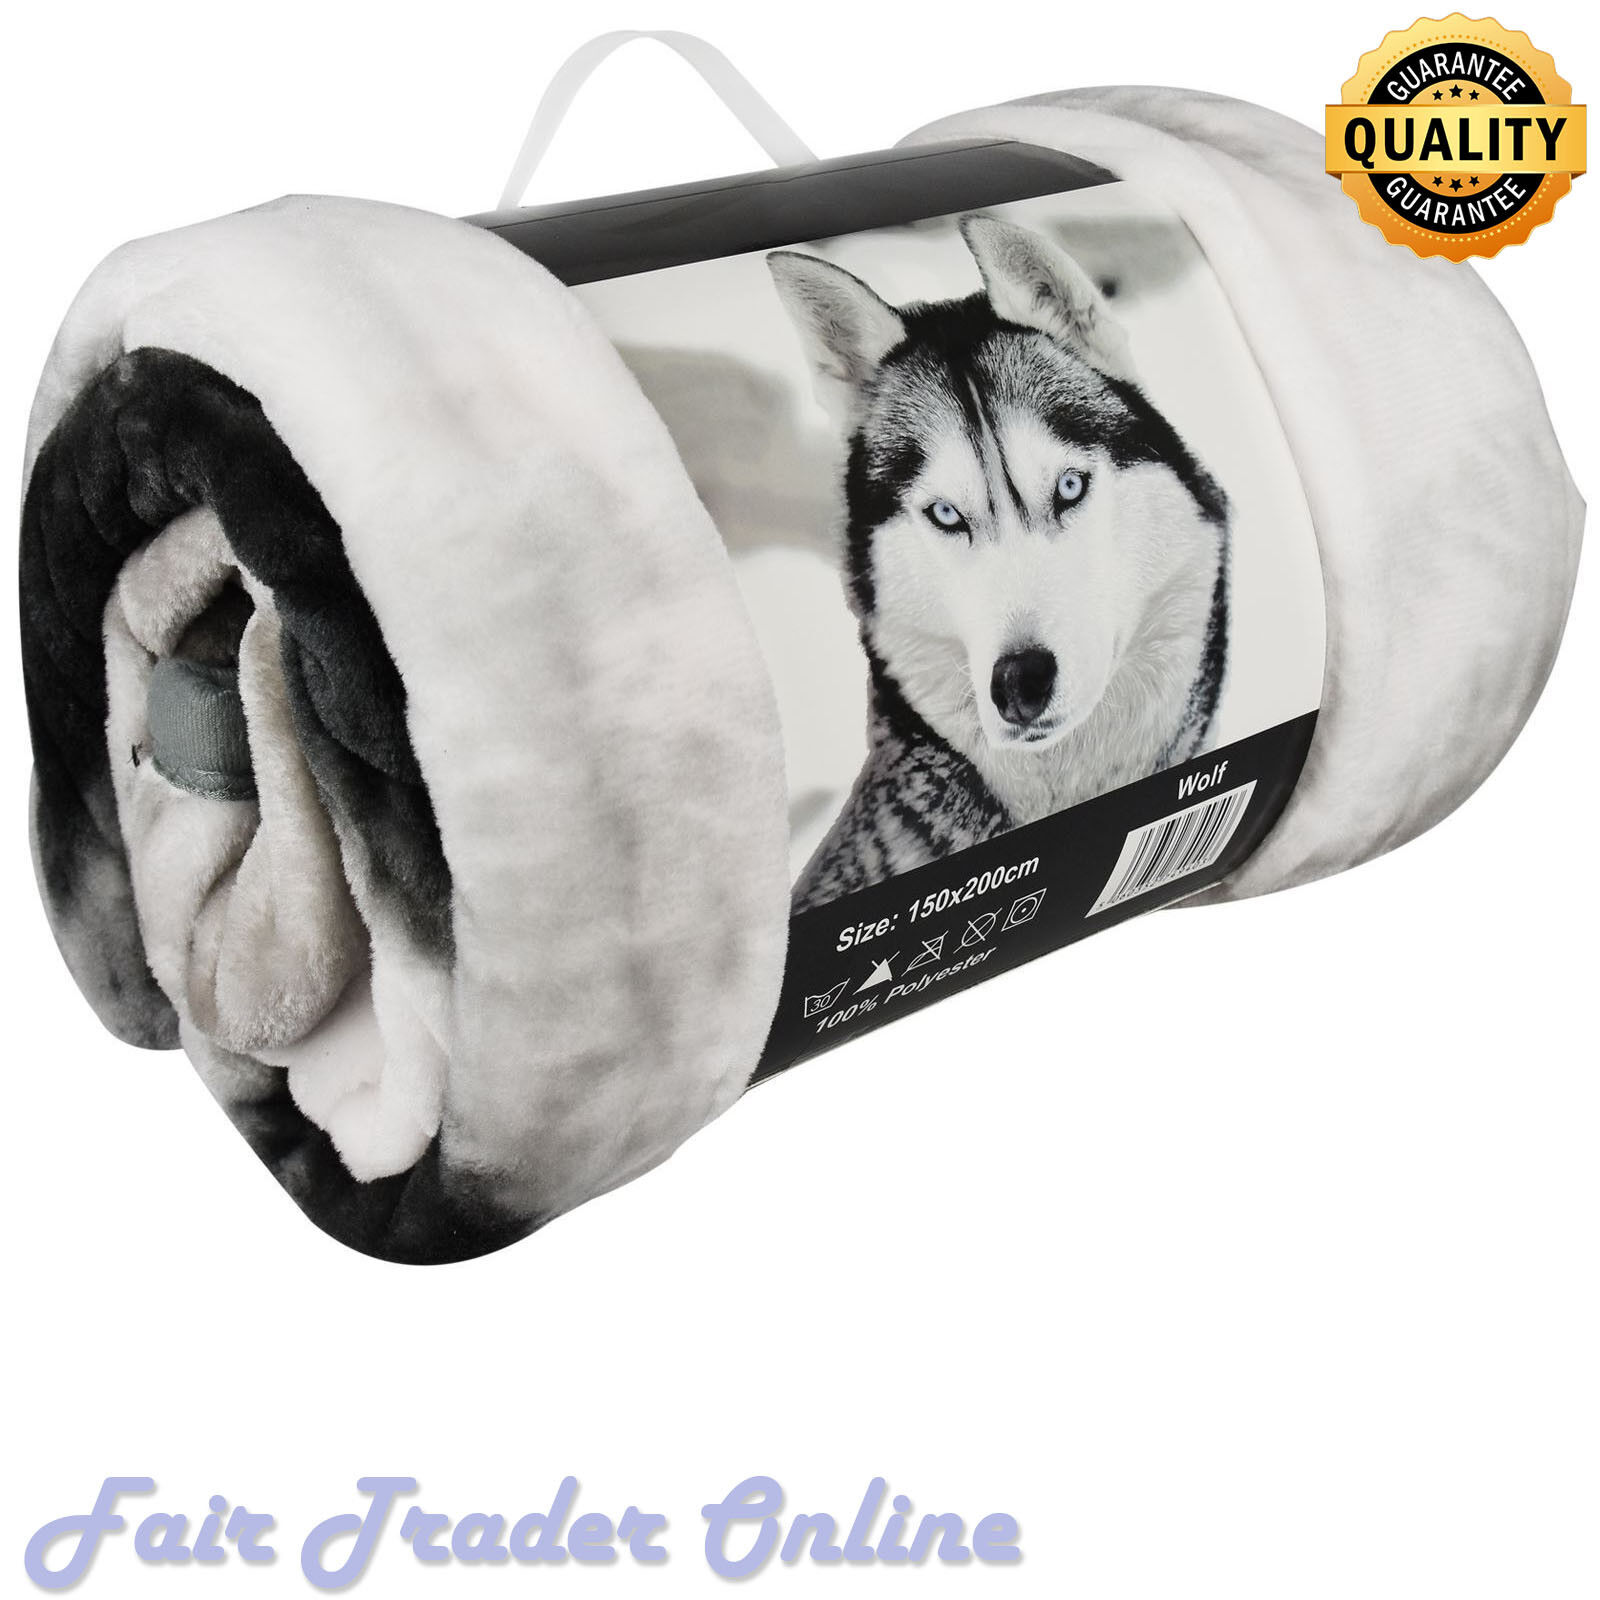 HOTEL QUALITY WHITE SMOKE FAUX FUR SOFT BED SOFA THROW BLANKET ROLLMINK THROWS